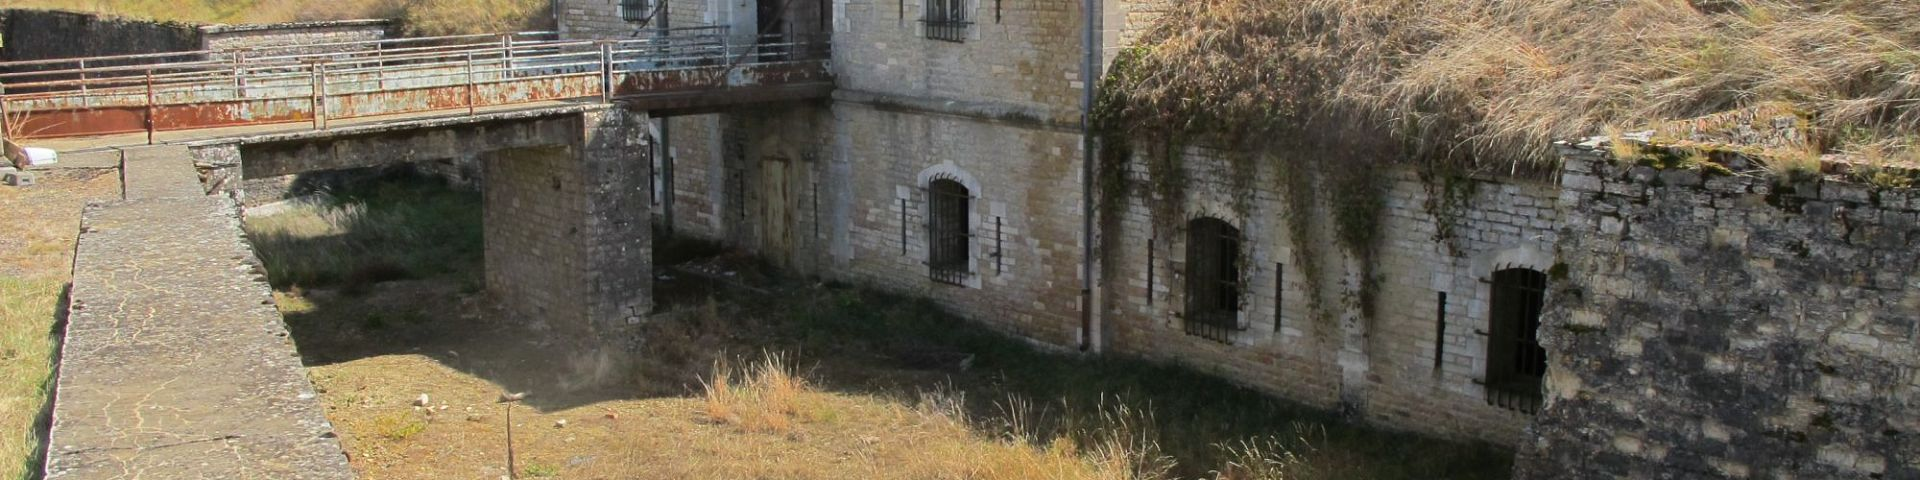 Fénay - Fort de Beauregard (21)